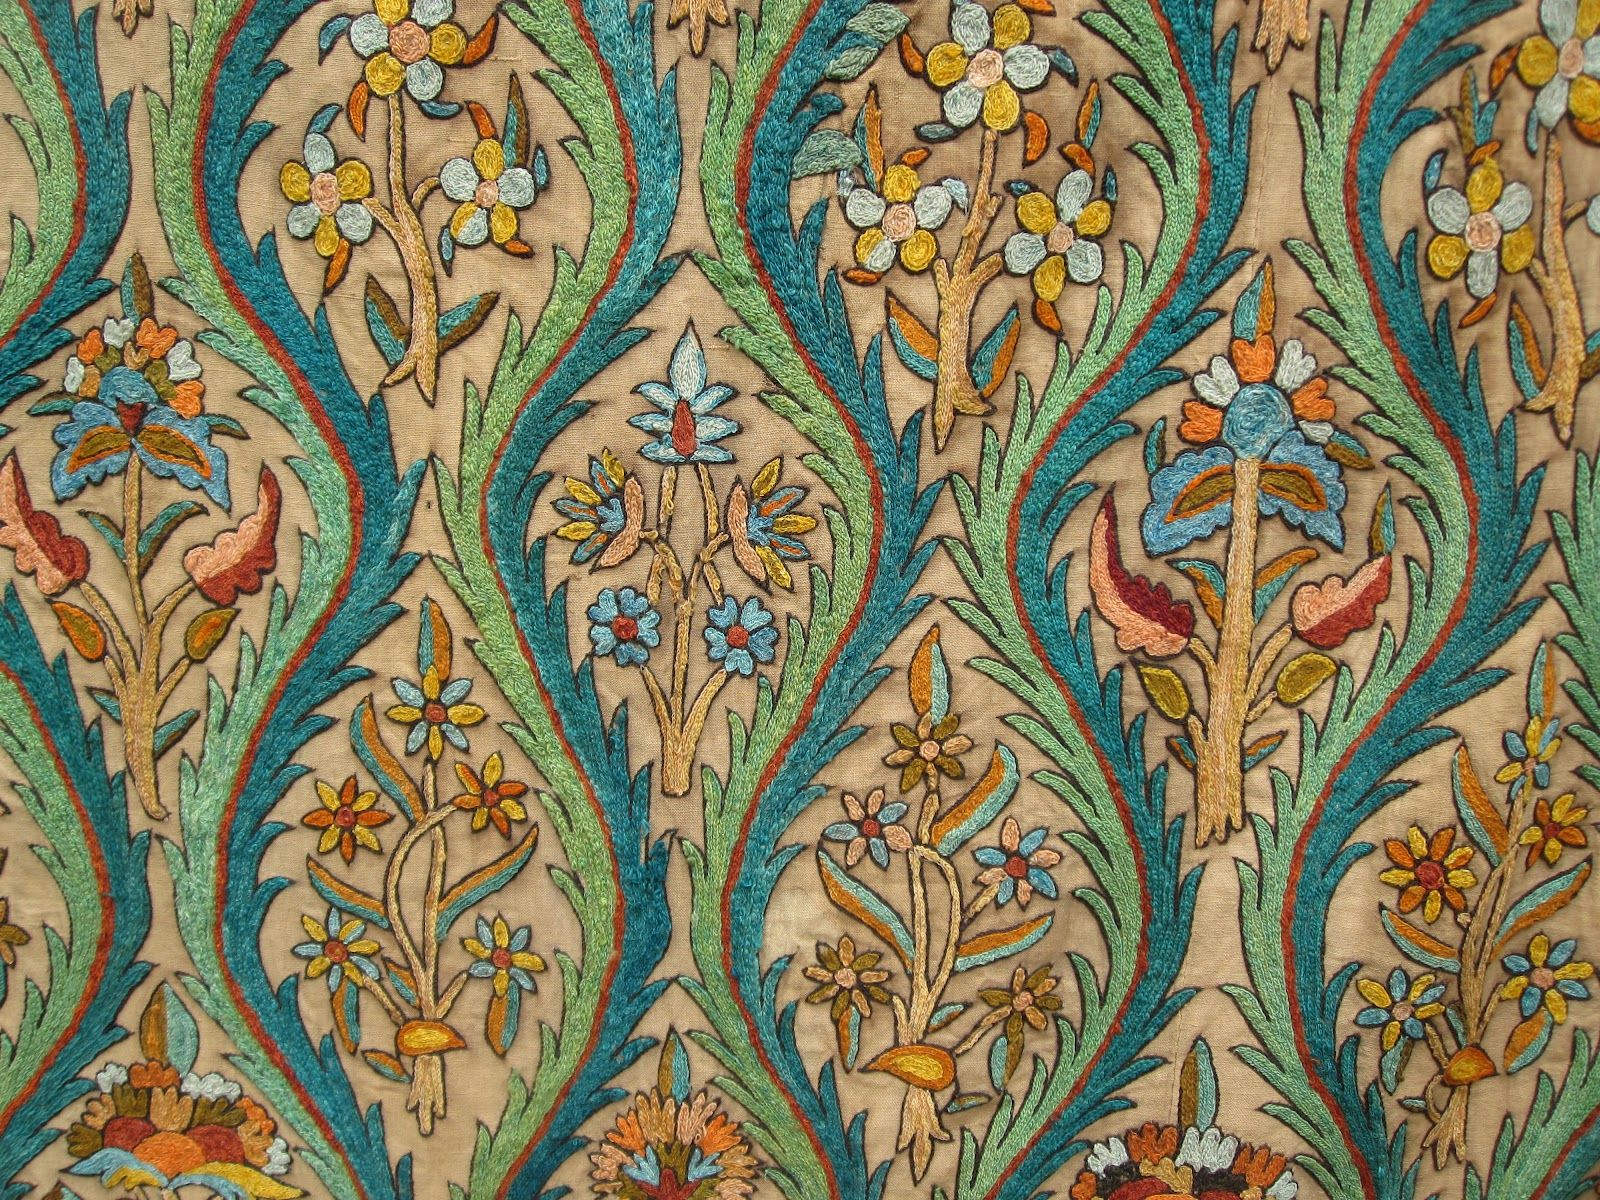 Famous Artists From The Arts And Crafts Movement - Know More